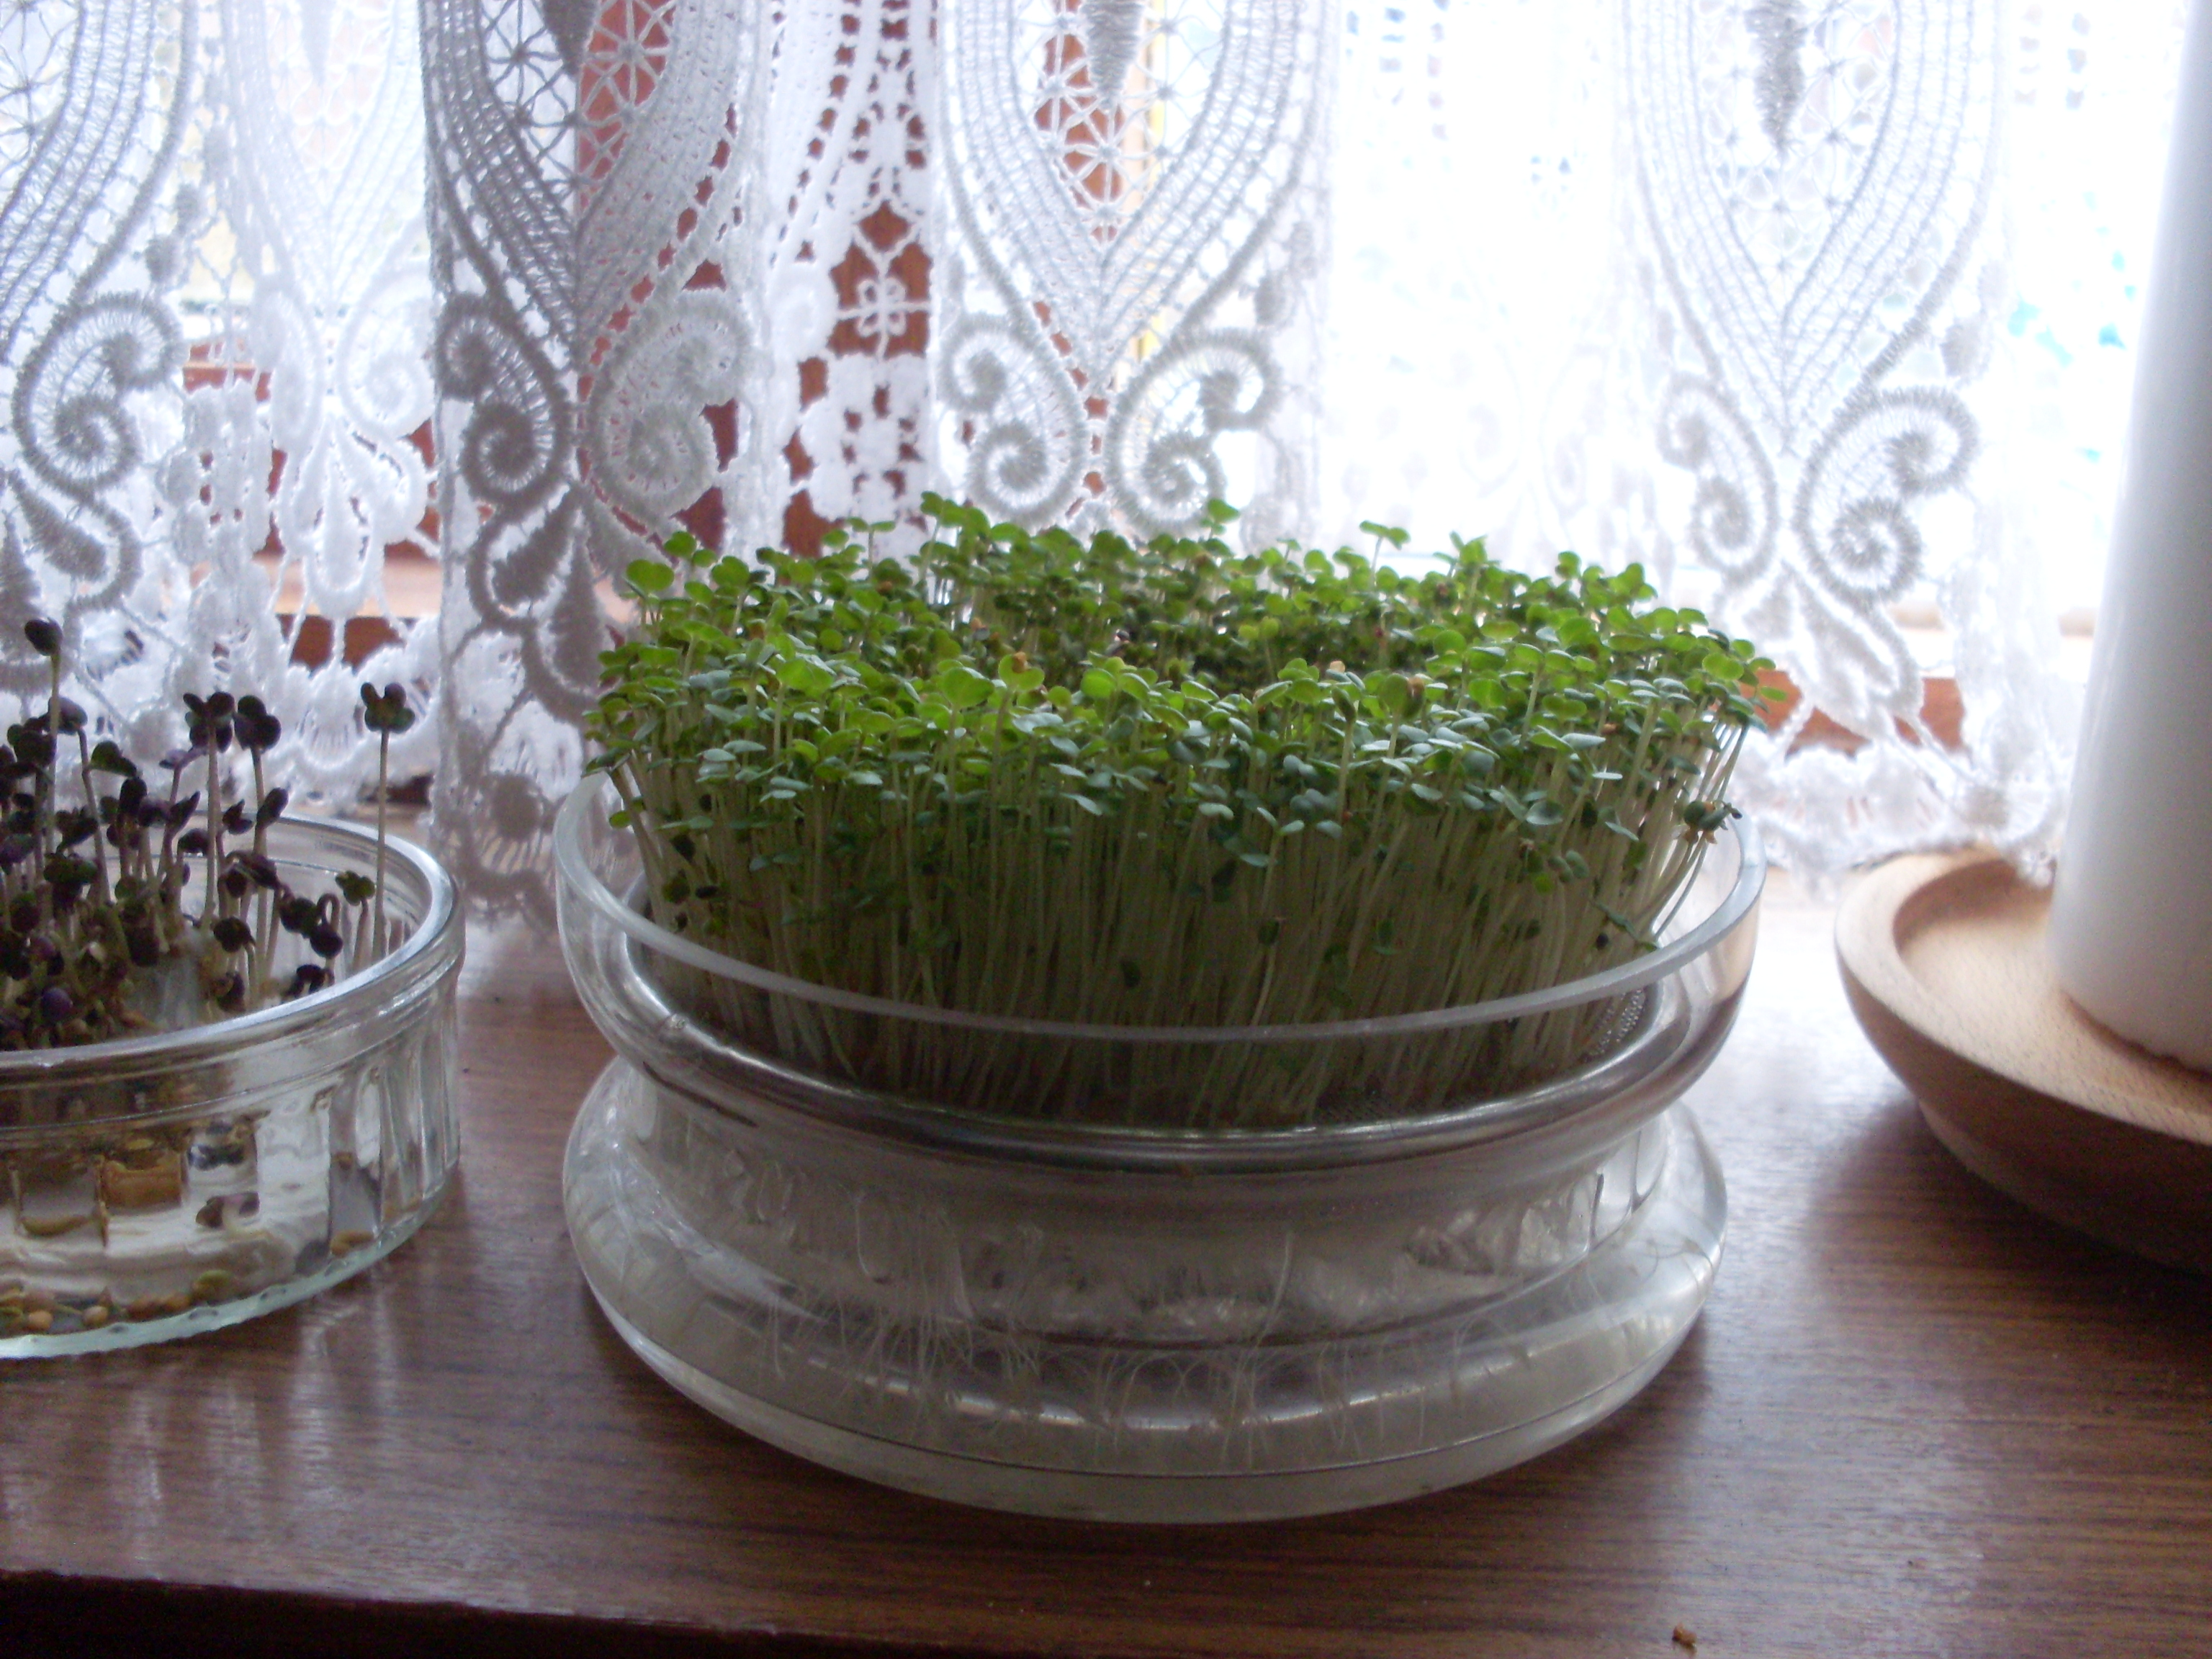 Growing your own sprouts (shoots) the cheap way